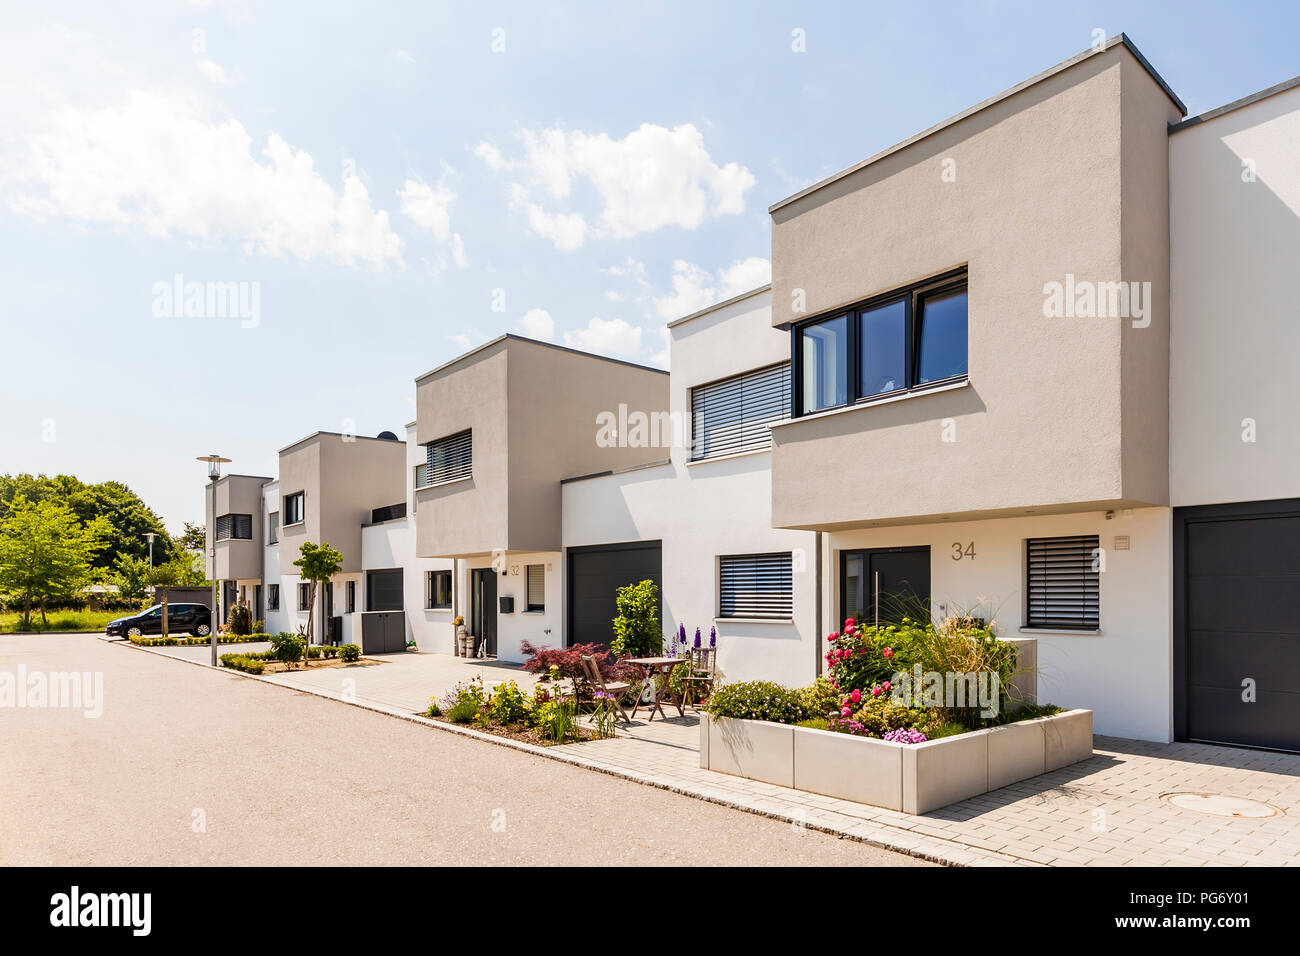 Germany, Bavaria, Neu-Ulm, modern one-family houses, efficiency houses - Stock Image